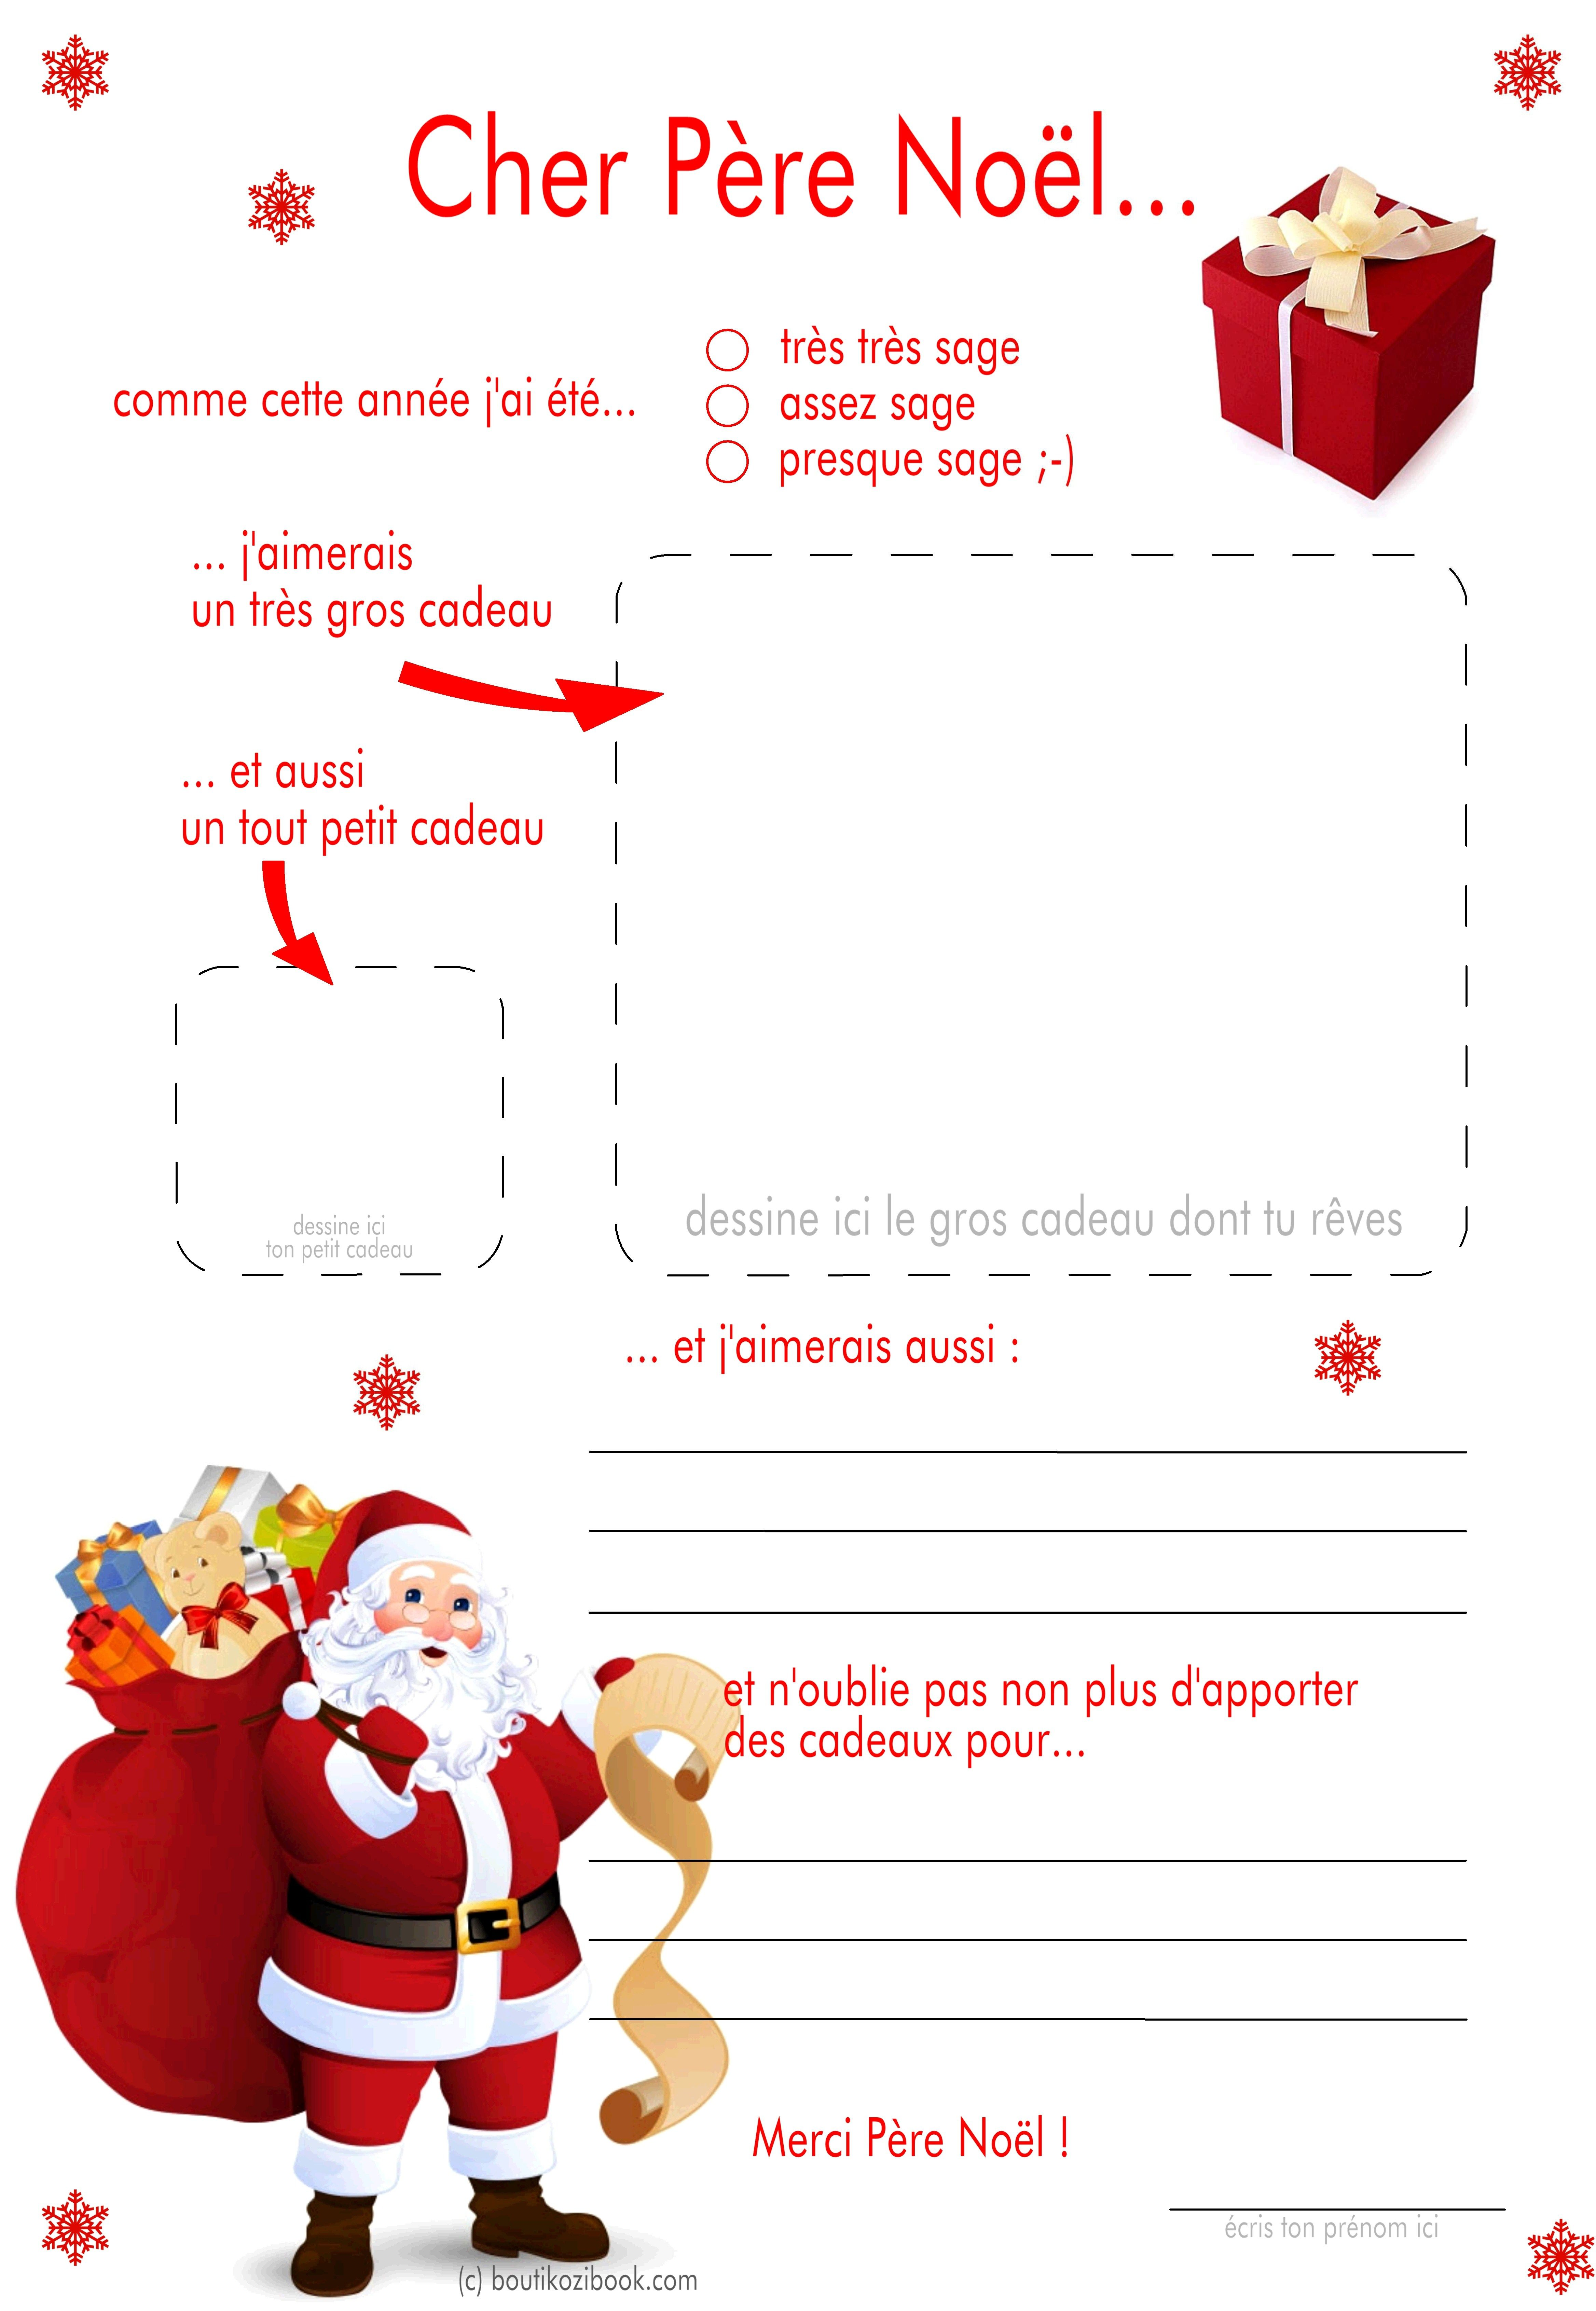 Pin by Farrah Thompson on noel | Christmas time, Learn french, Holiday